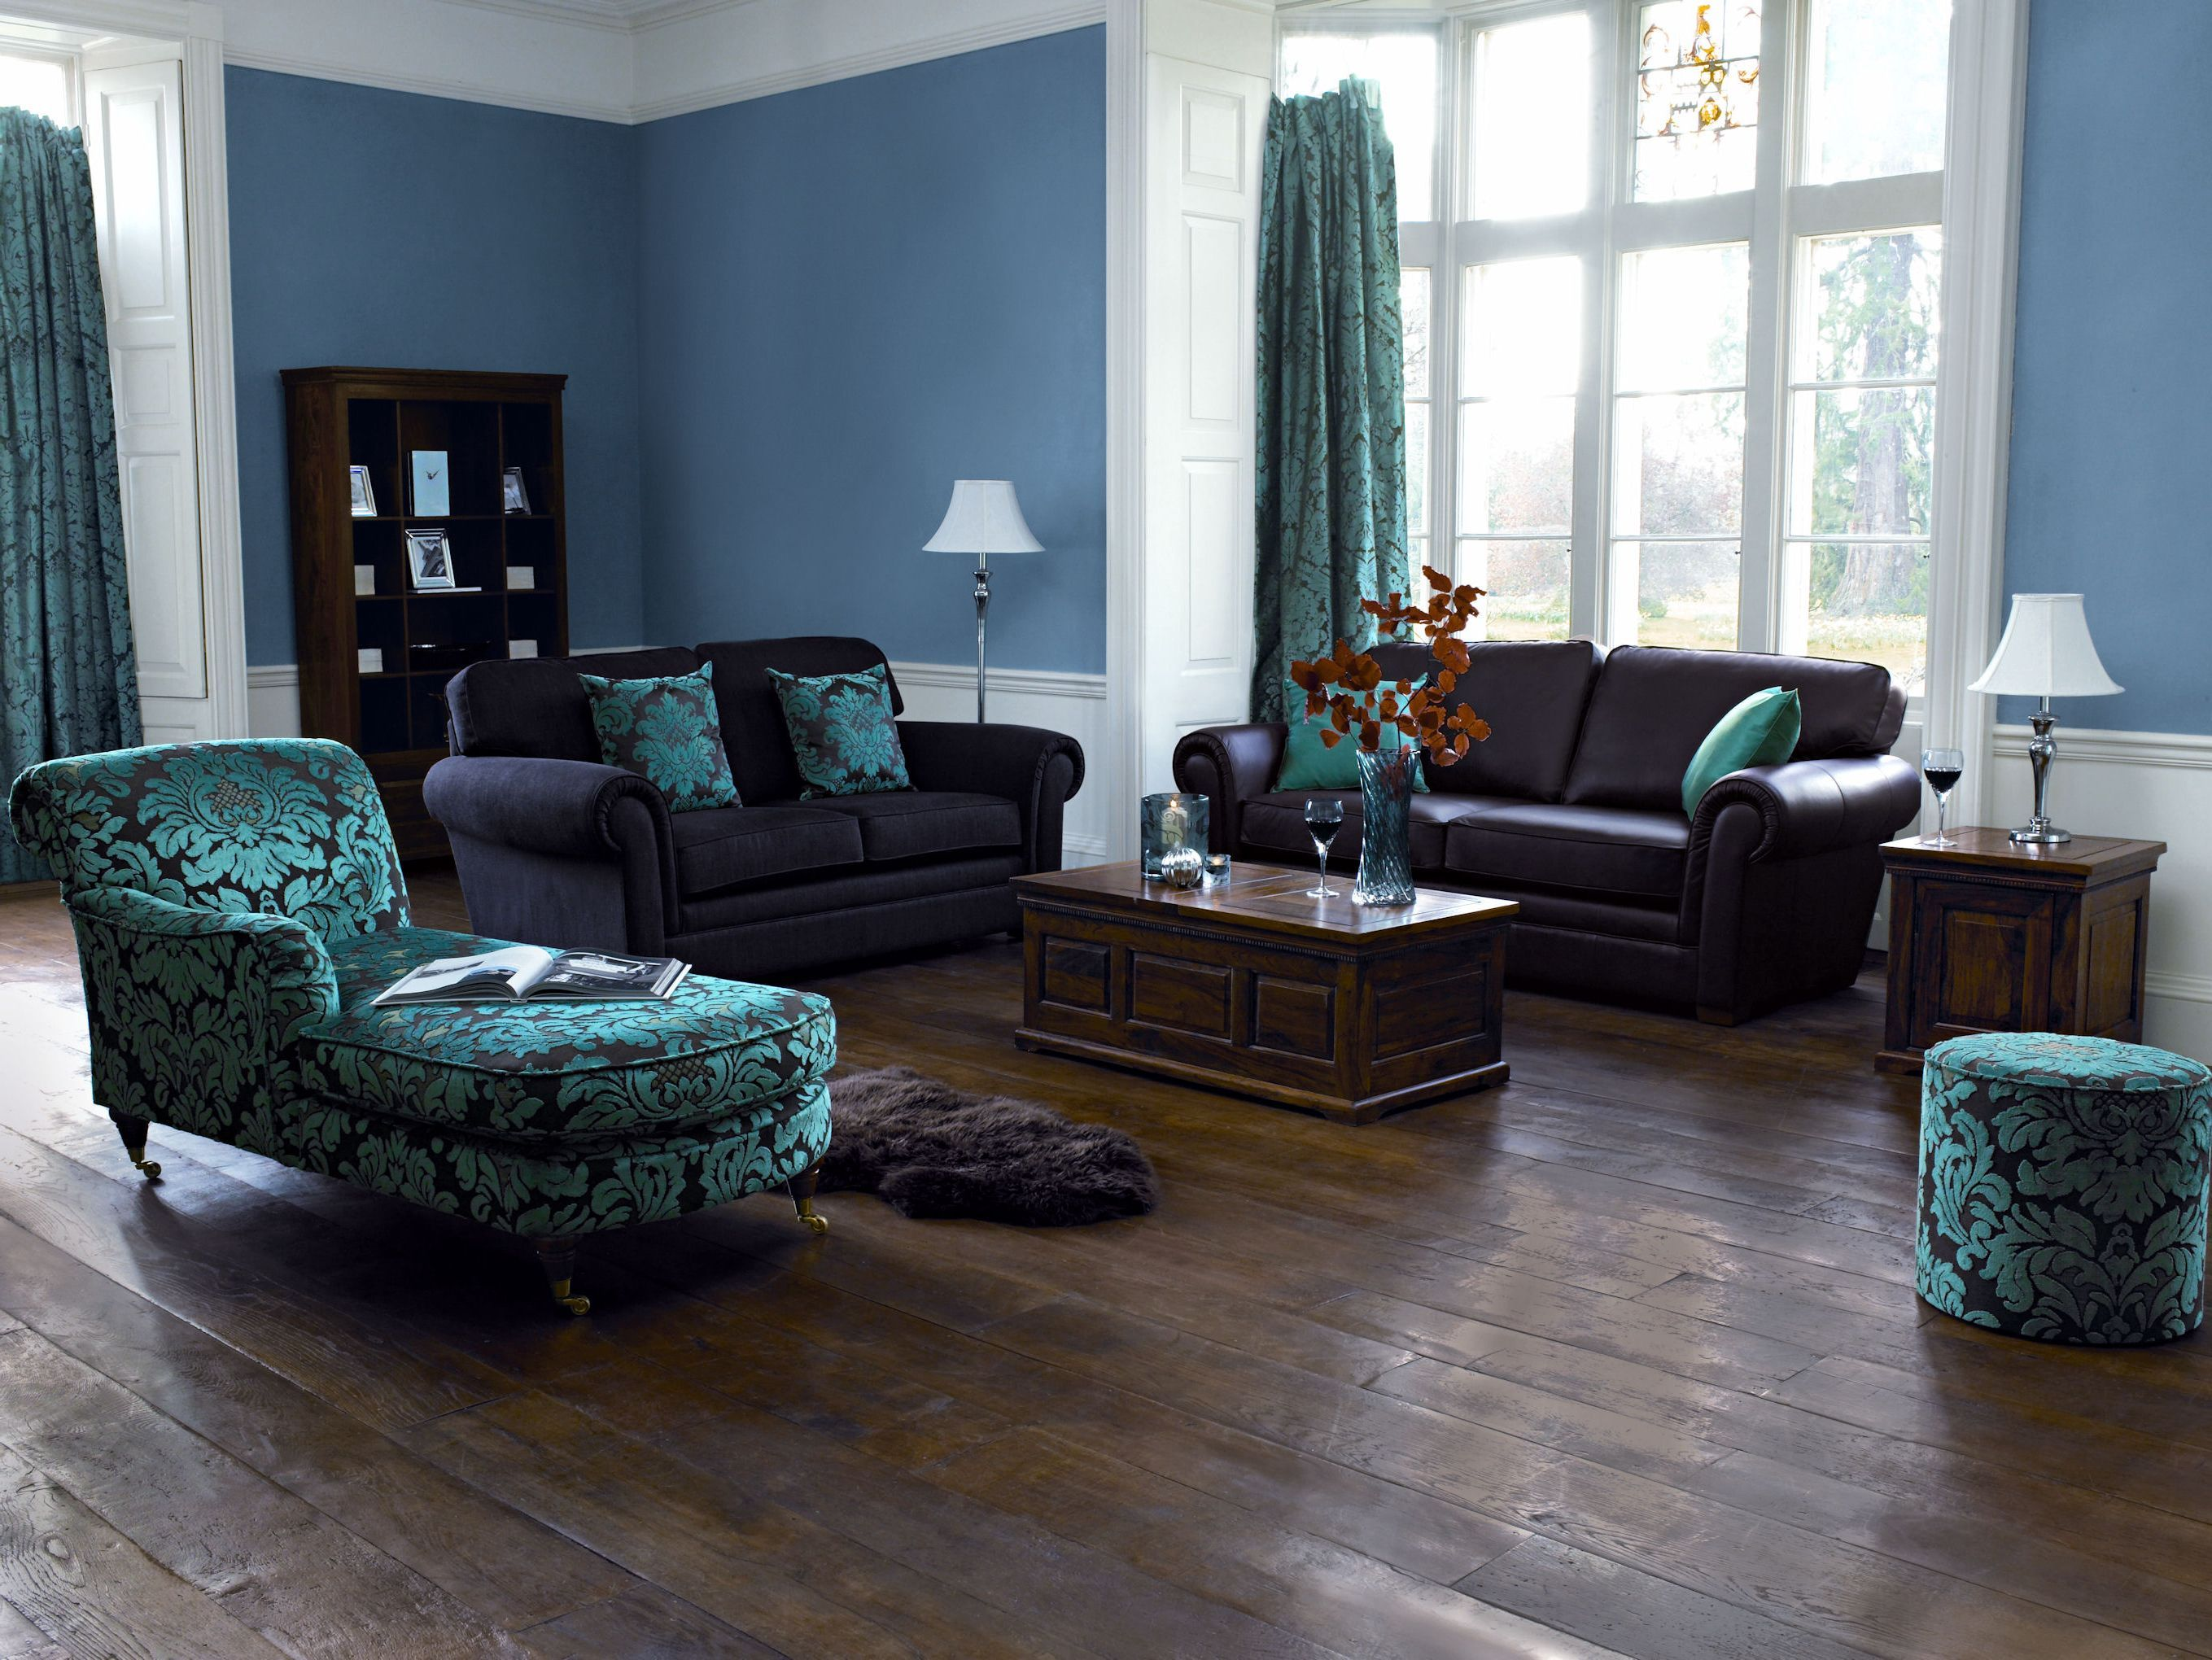 Blue Brown And Green Living Room 79 best projects to try images on pinterest | living room ideas